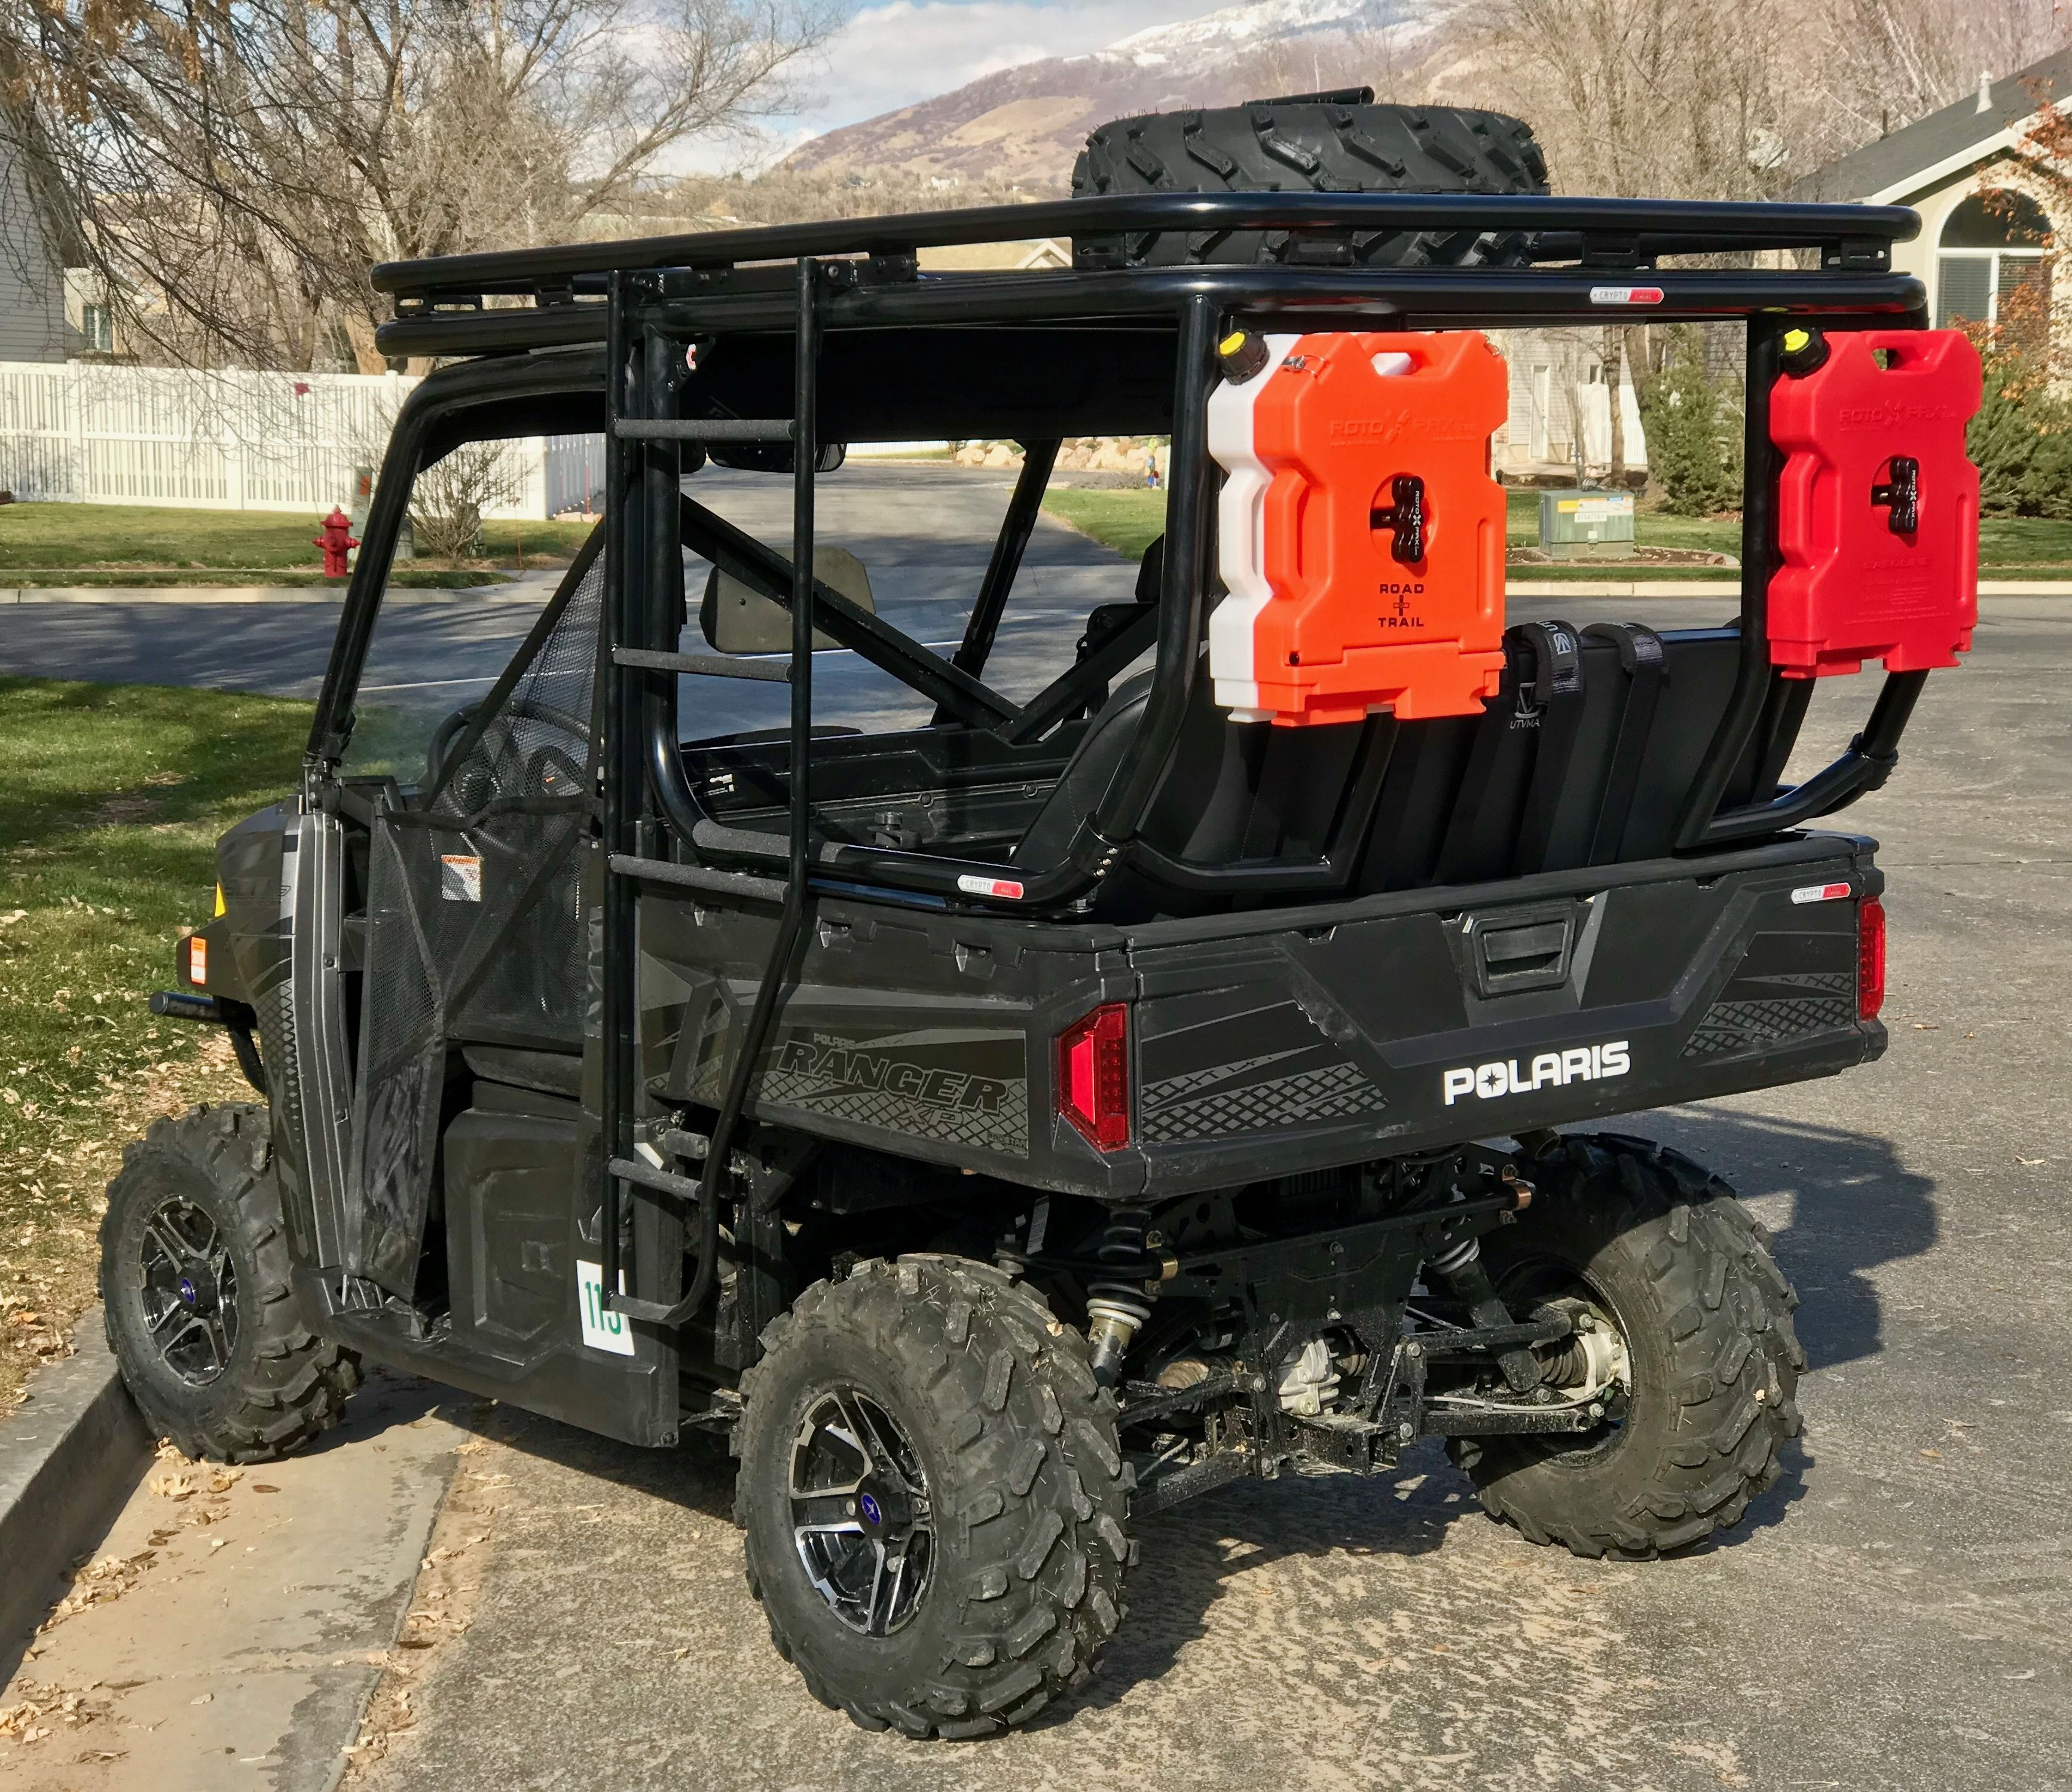 Cryptocage Introduces The Kong Cage For The Polaris Ranger 900 And 1000 The Kong Polaris Ranger Polaris Ranger Roll Cage Extension Polaris Ranger Accessories